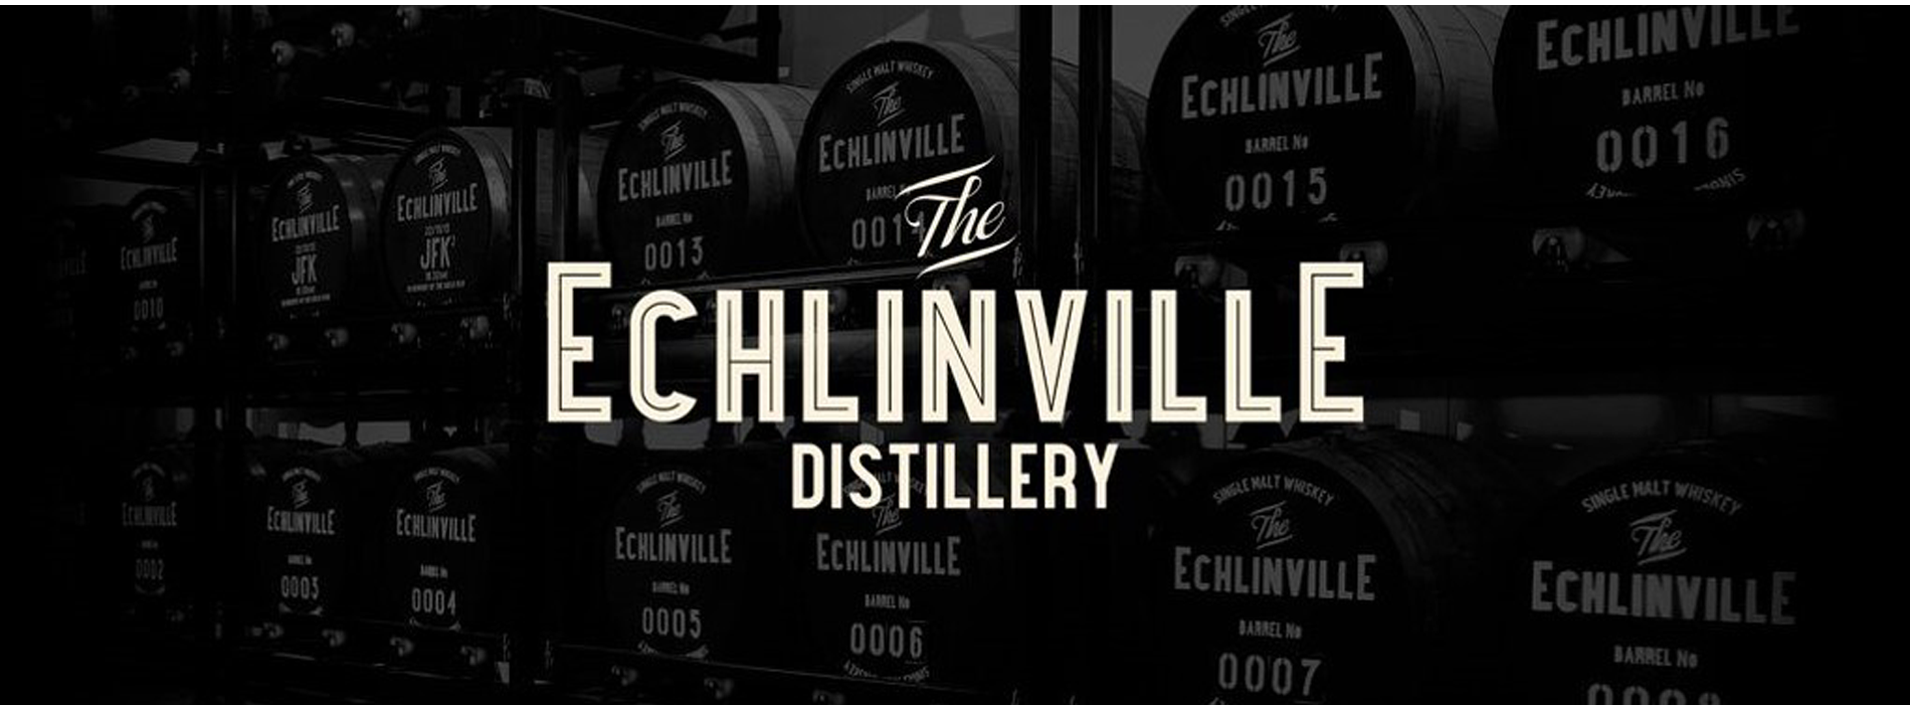 Buy Dunvilles - Jawbox - Echlinville Online | Fairleys Wines (NI)